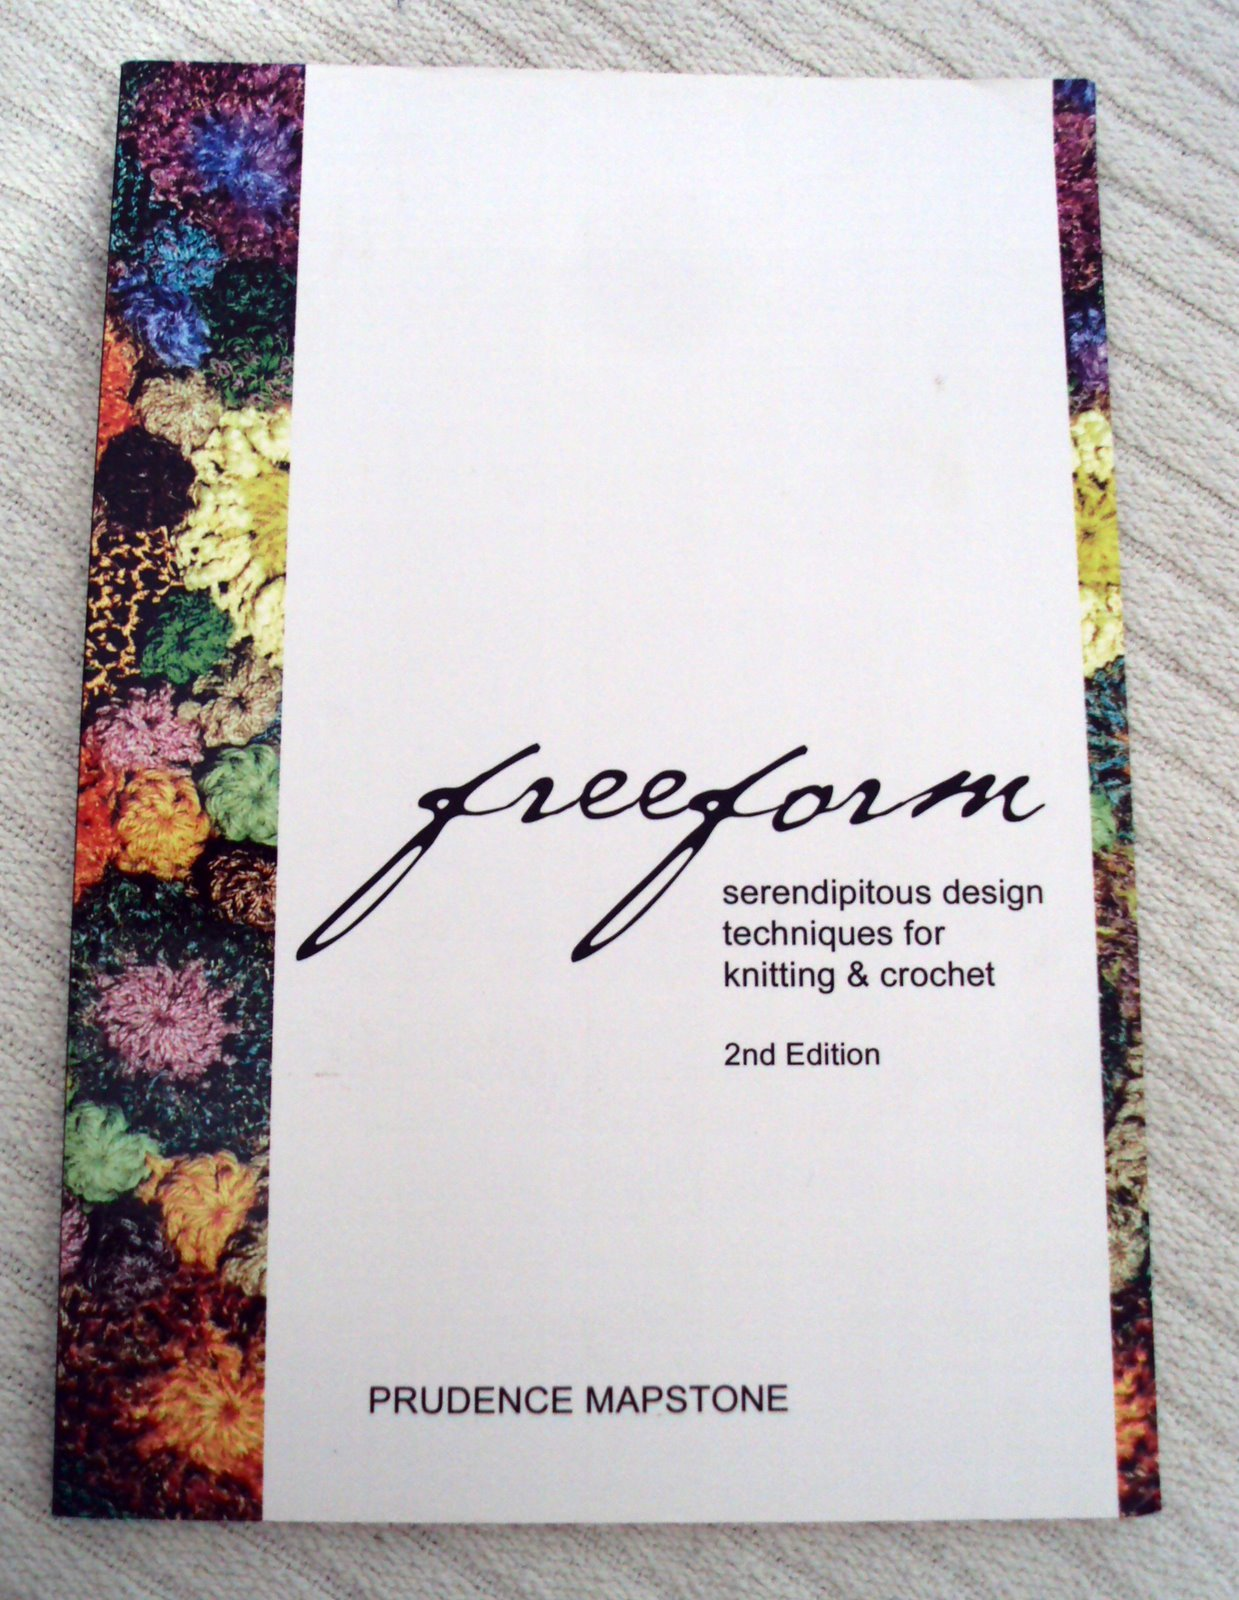 Freeform: Serendipitous Design Technqiues for Knitting and Crochet  Paperback – 2006